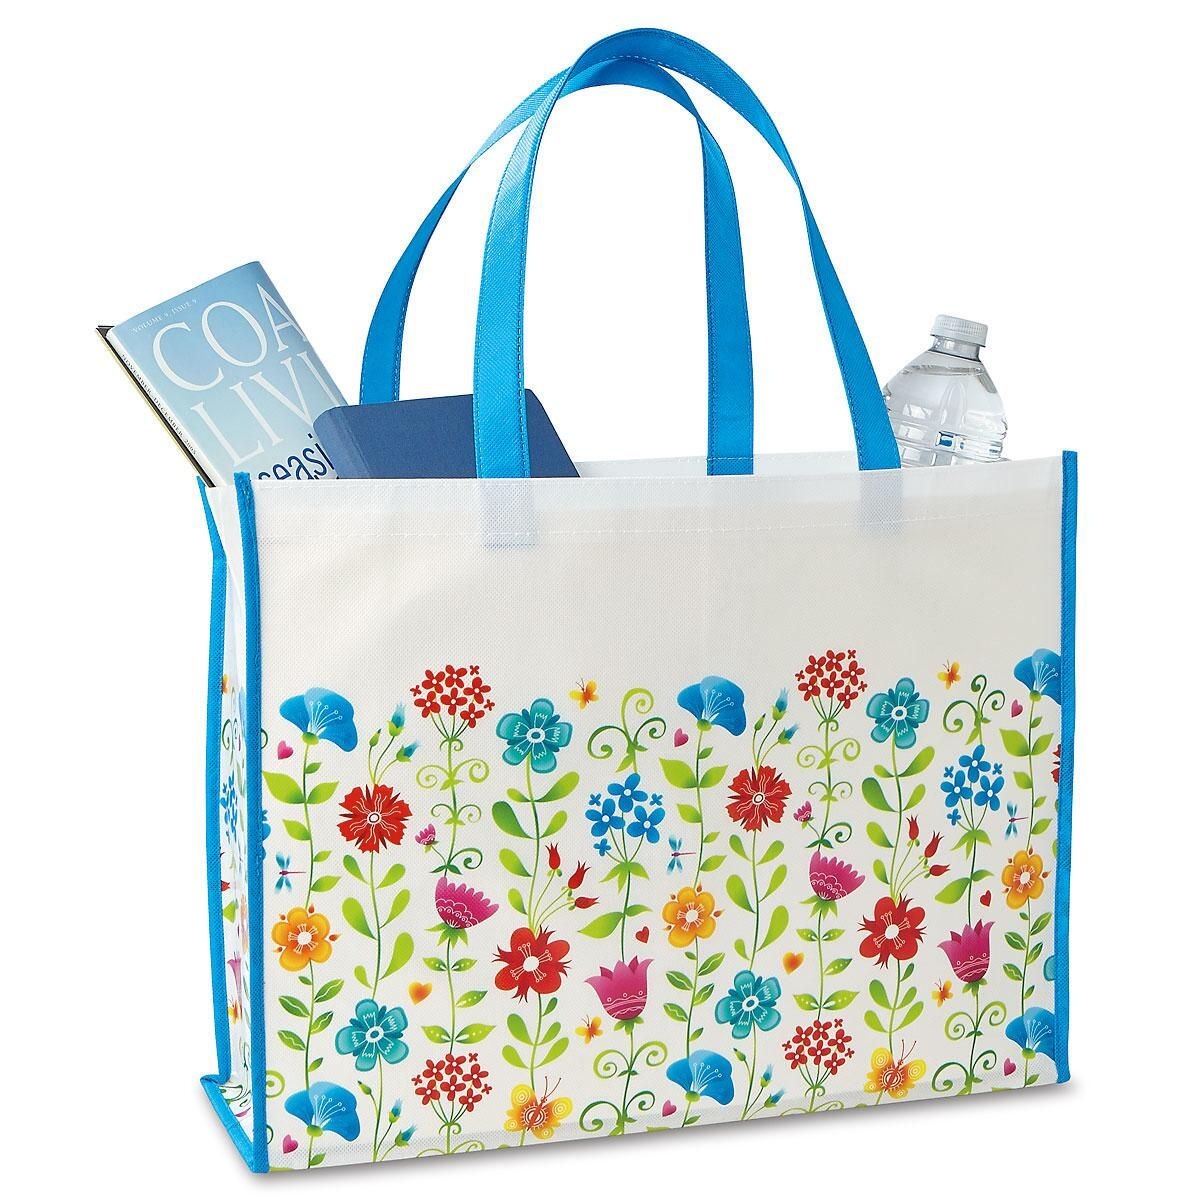 Whimsical Wildflowers Tote Bag - Buy 1 Get 1 FREE